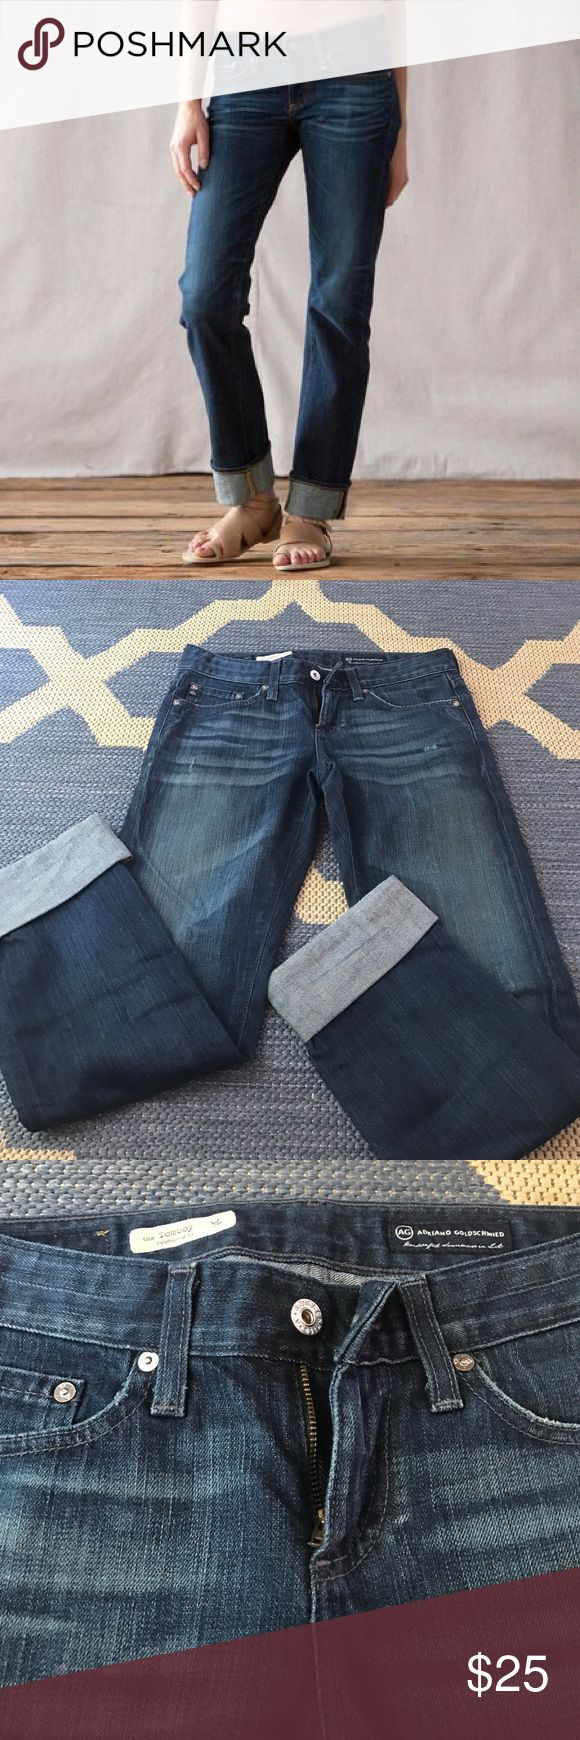 AG Anthropologie boyfriend fit jeans Adriano Goldschmied AG purchased from Anthropologie boyfriend fit jeans. Excellent condition. Run large. No trades. AG Adriano Goldschmied Jeans Boyfriend